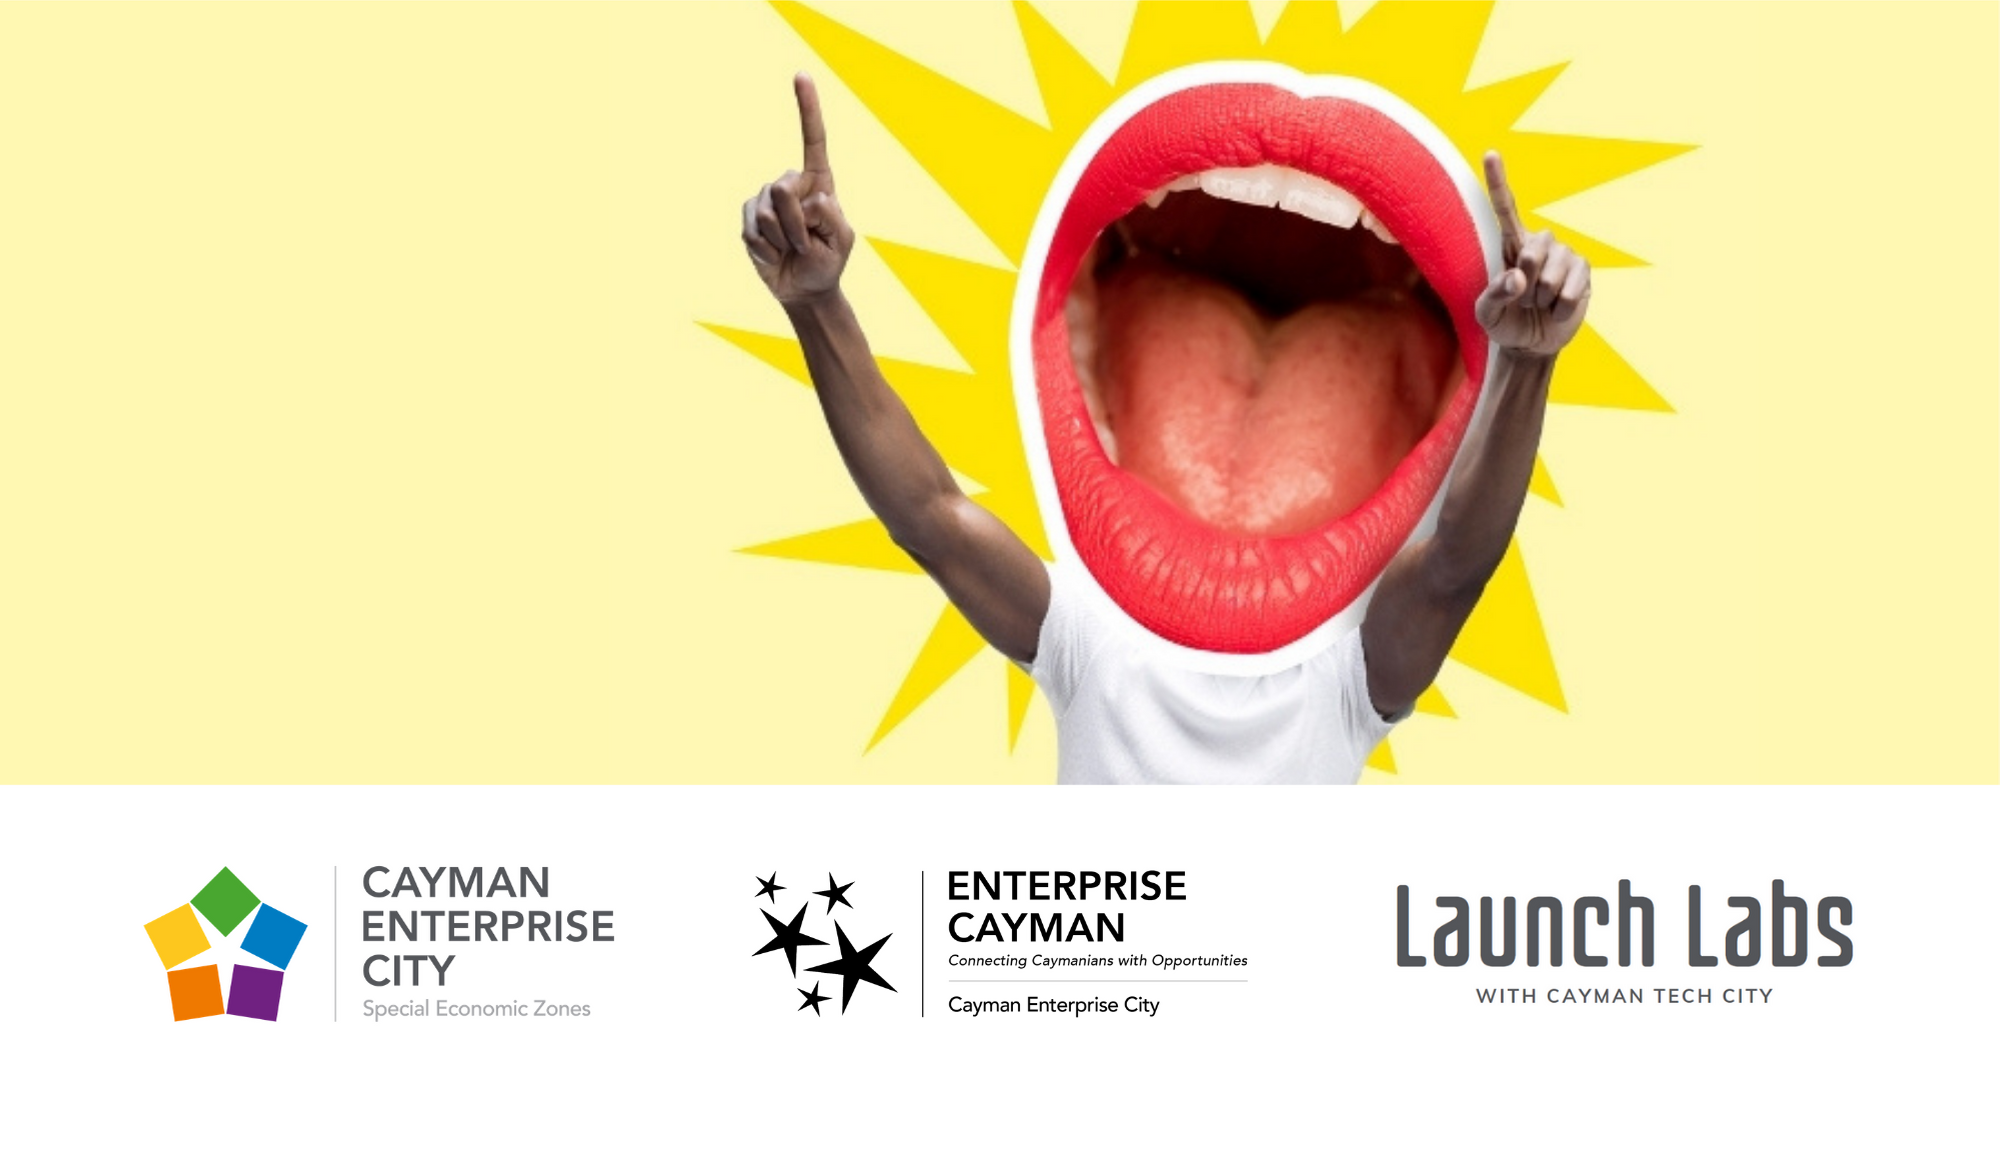 Launch Labs Cayman Islands